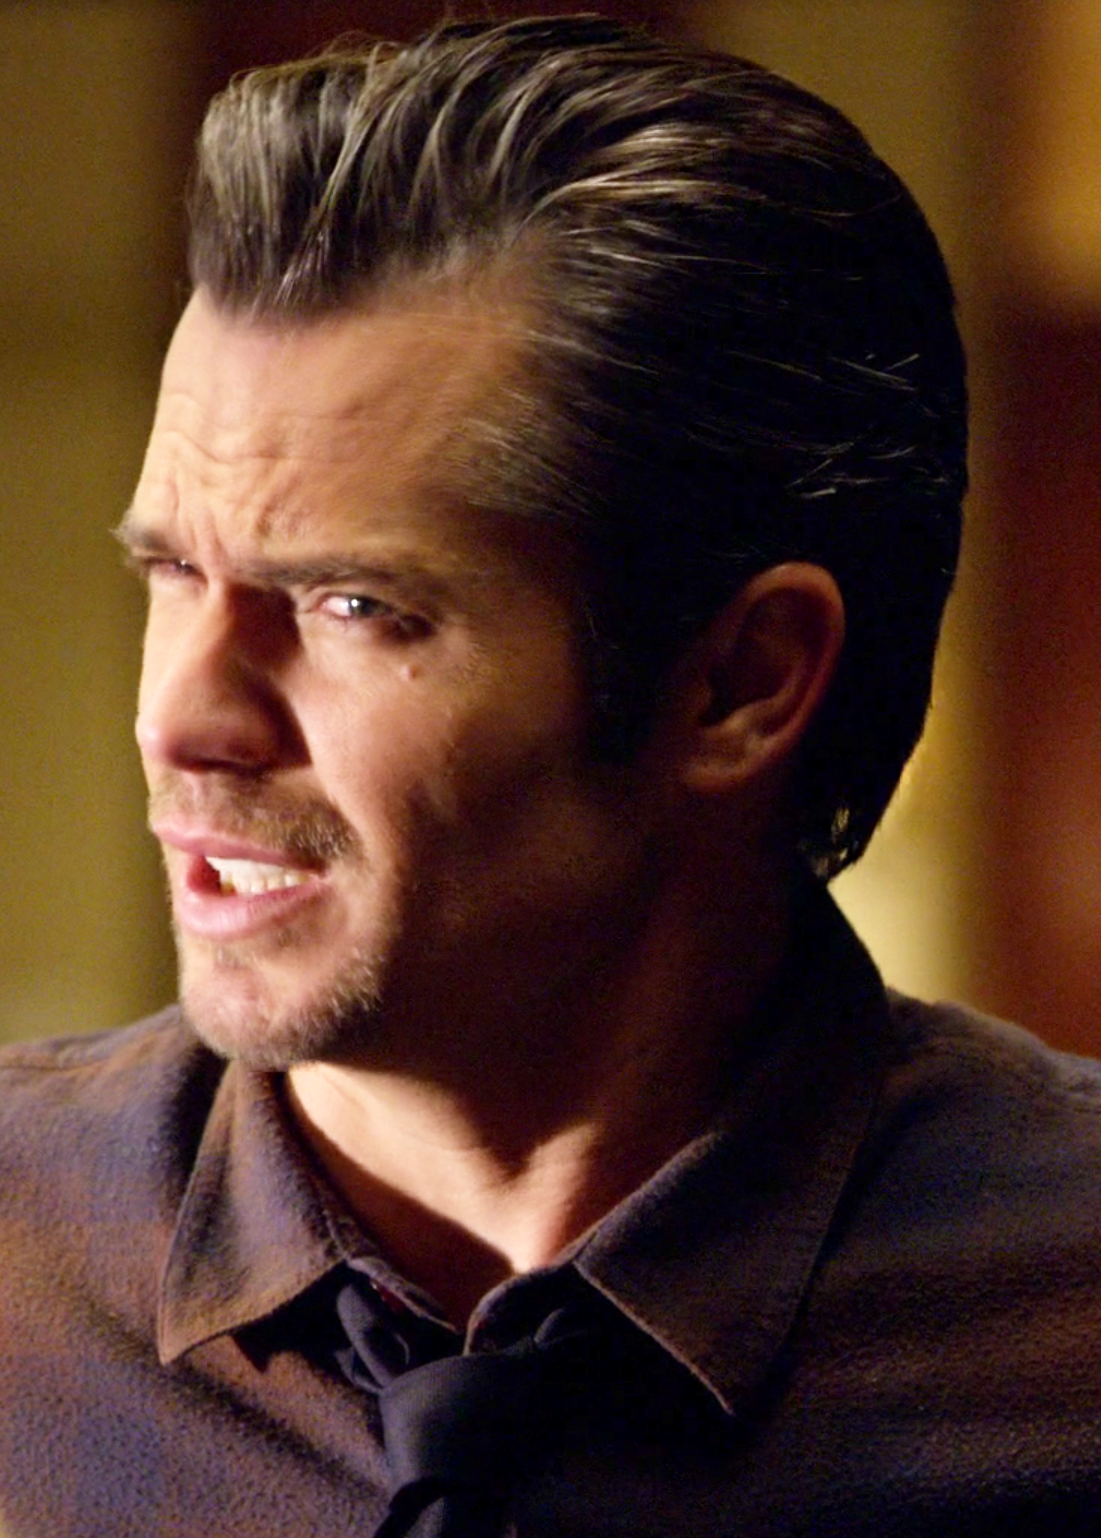 Timothy Olyphant As Raylan Givens In Justified Season 2 Episode 3